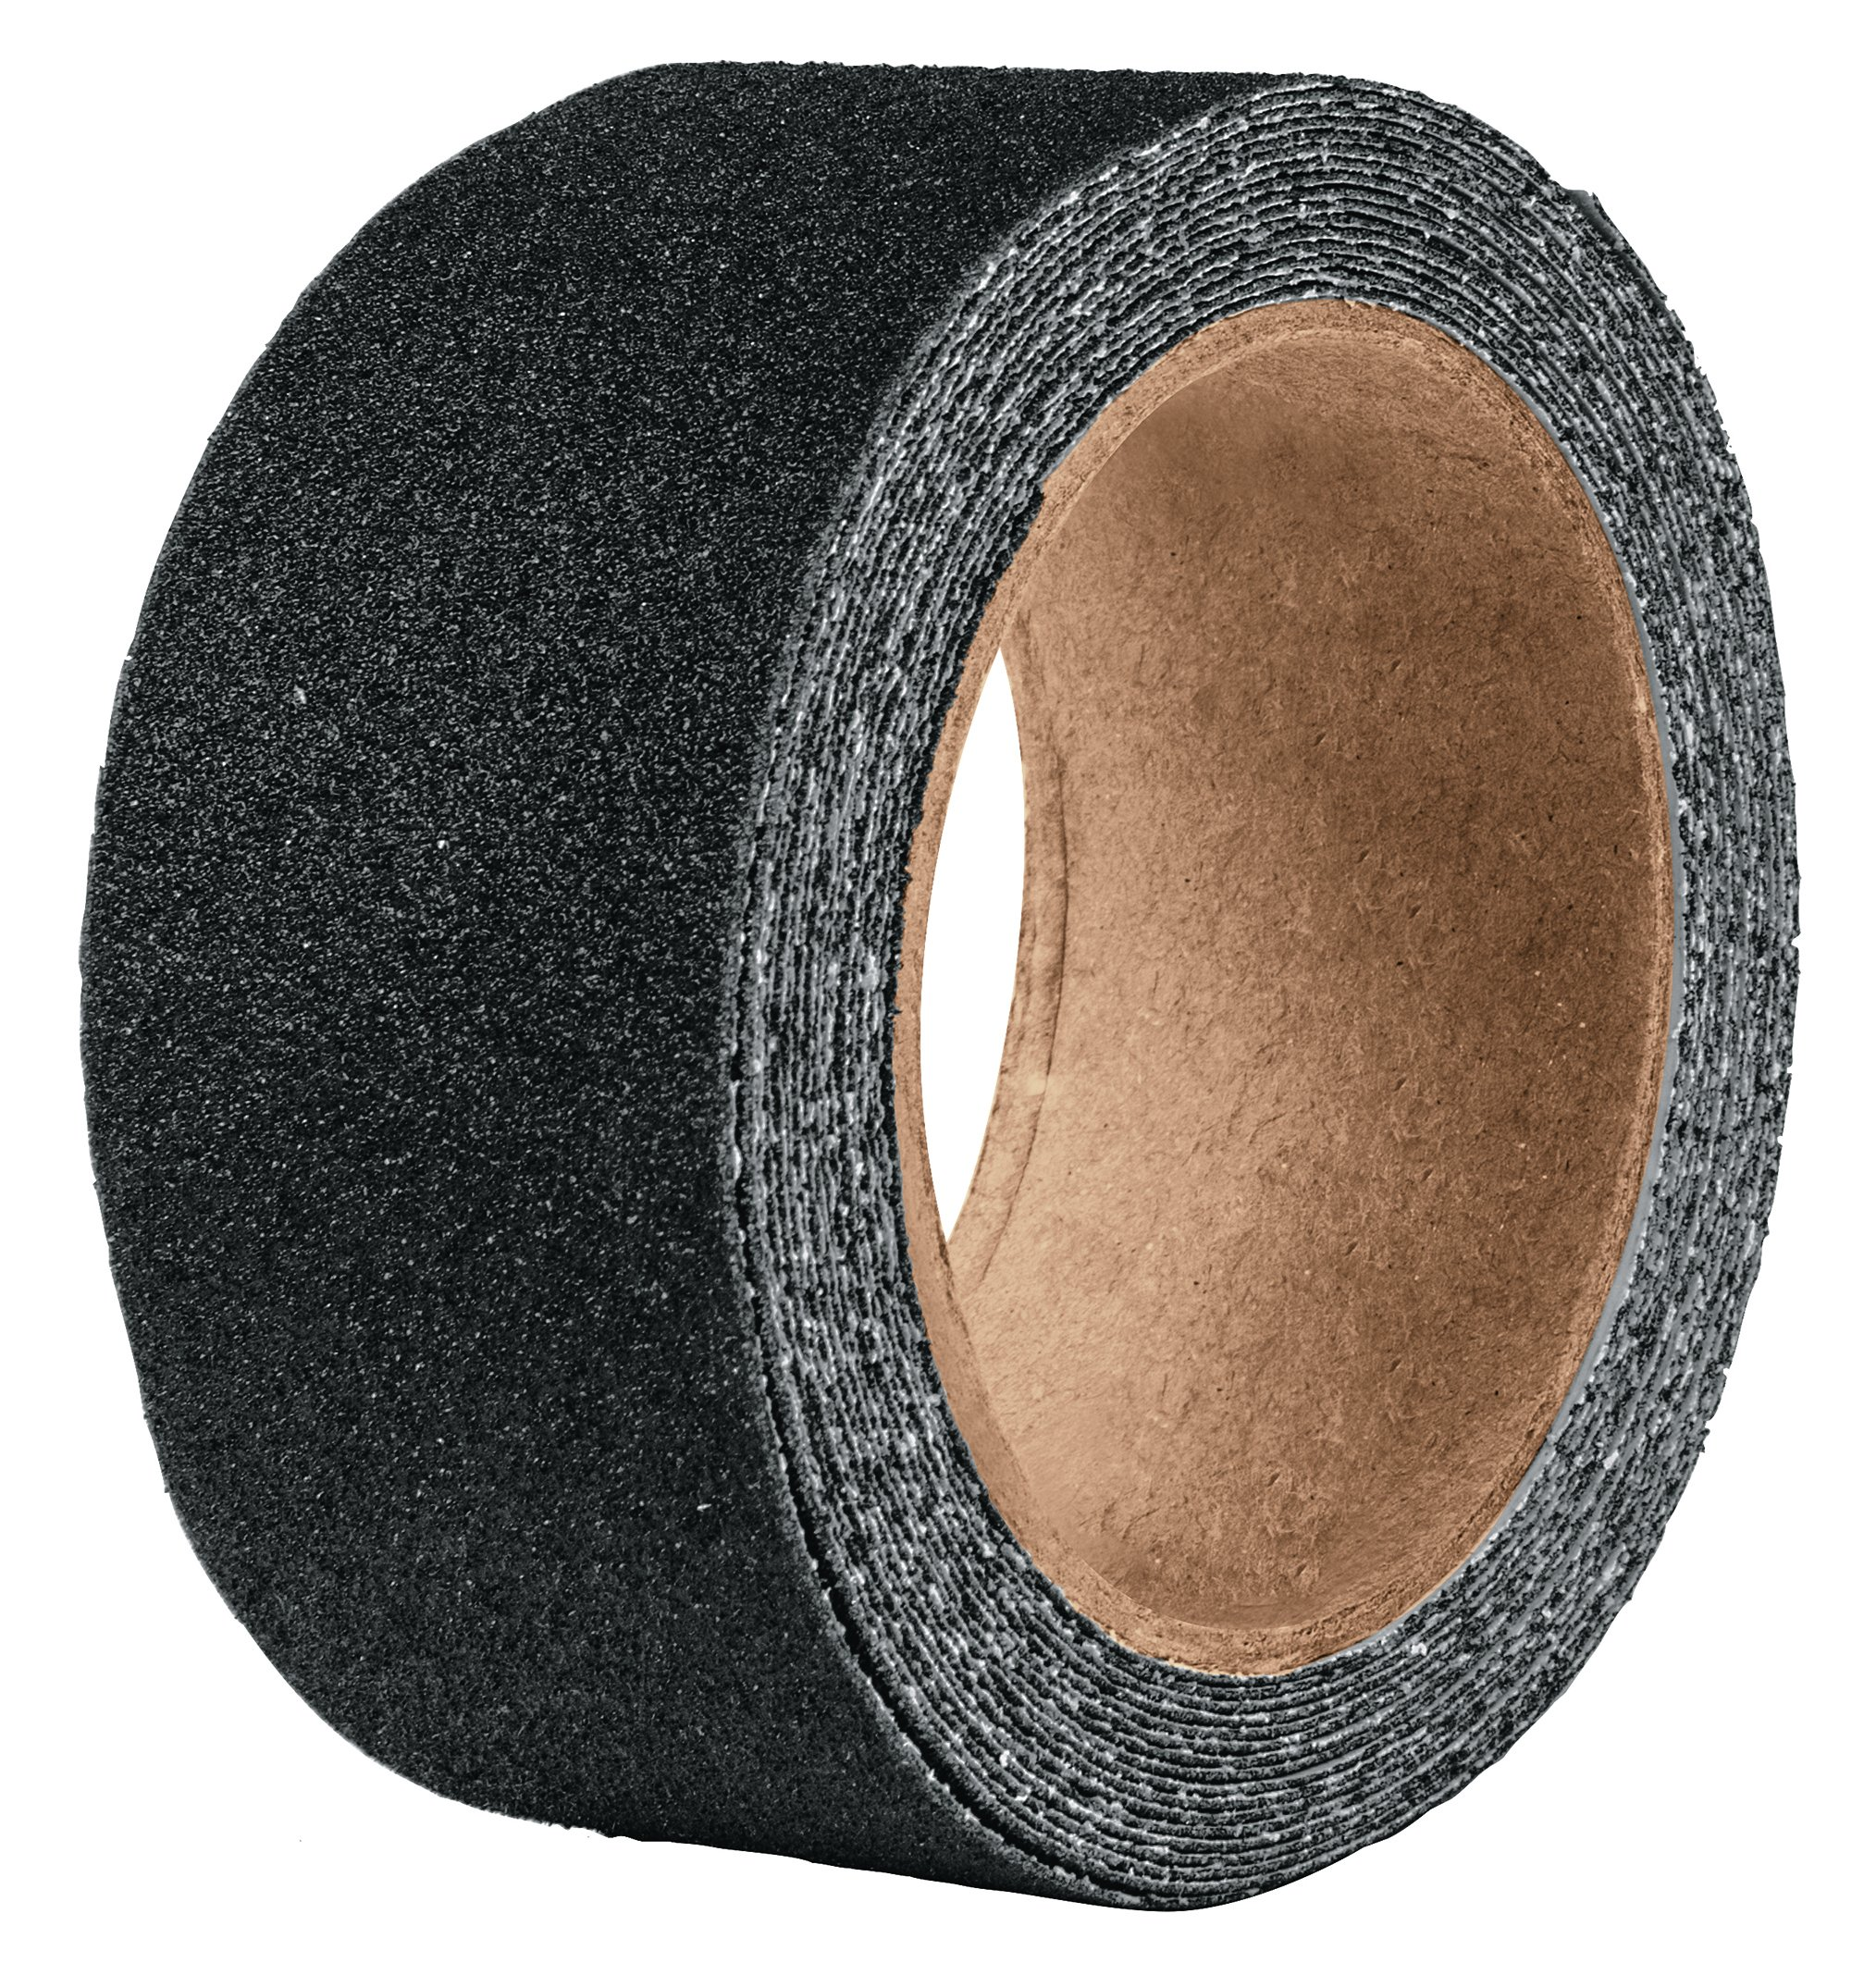 TRUPER CAD-RN 2-Inch by 16.4 ft Safety Anti-Slip Roll Tapes Black